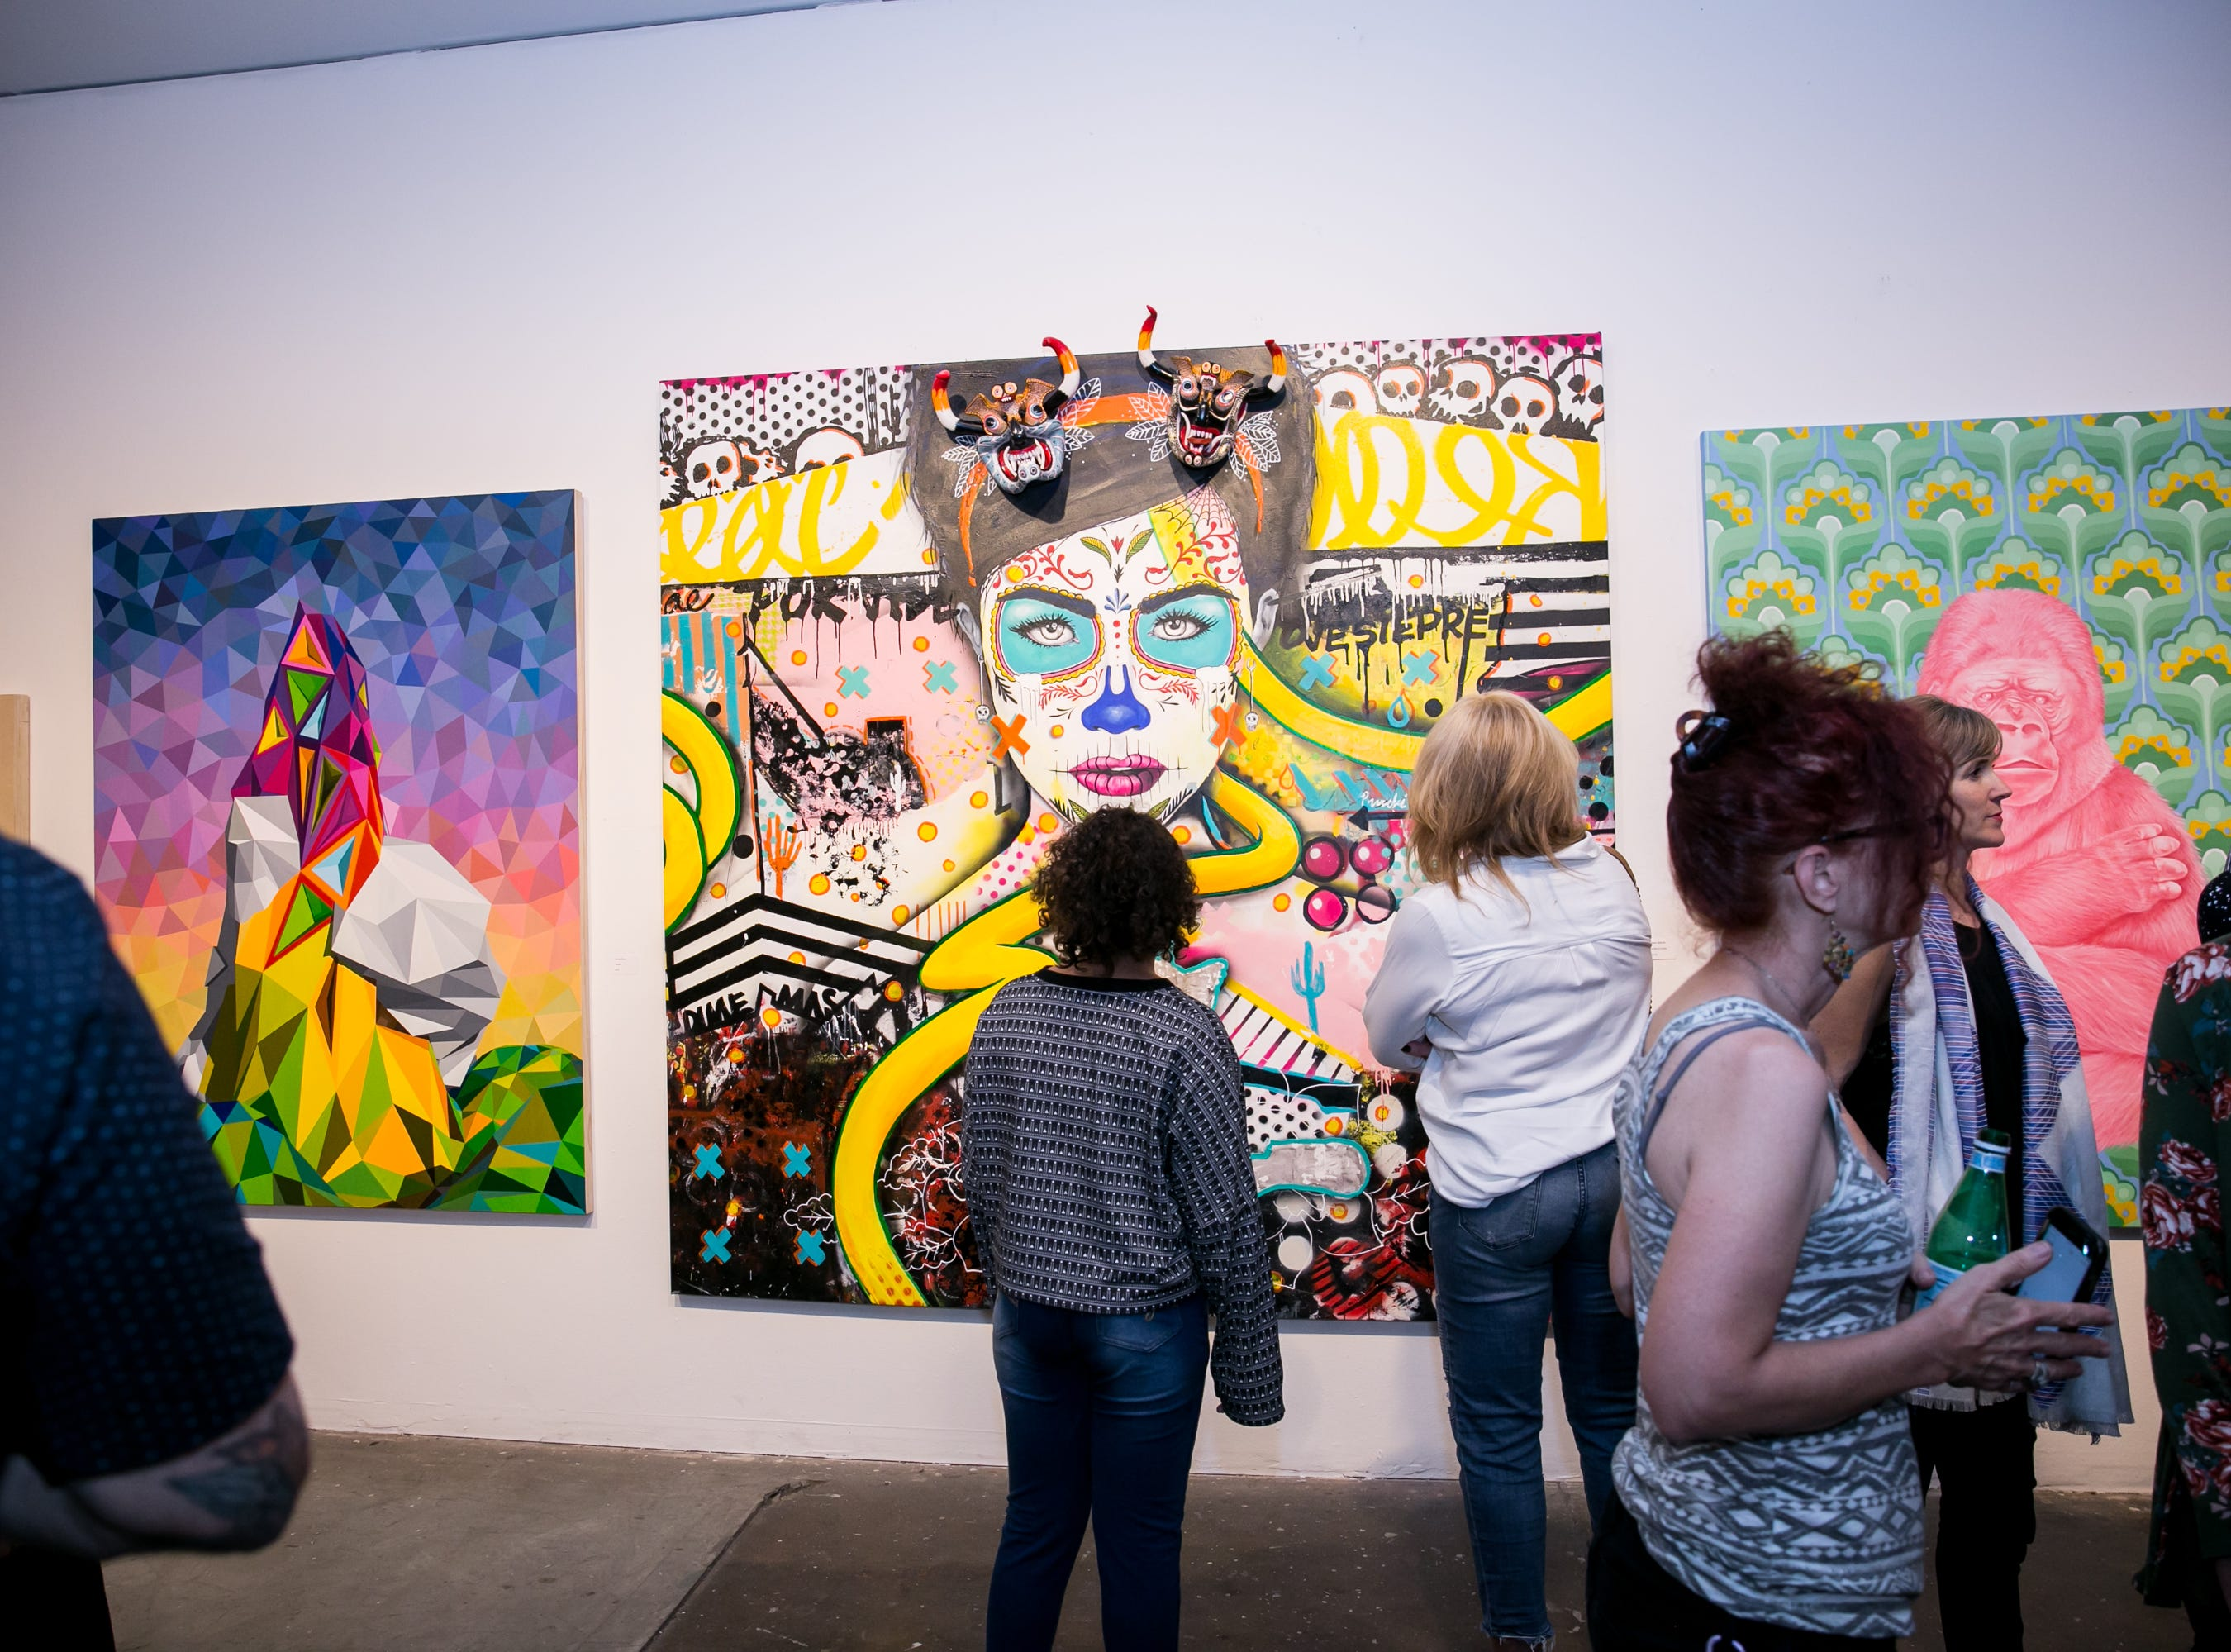 Attendees scope out amazing art during Chaos Theory 19 at Legend City Studios during First Friday on October 5, 2018.